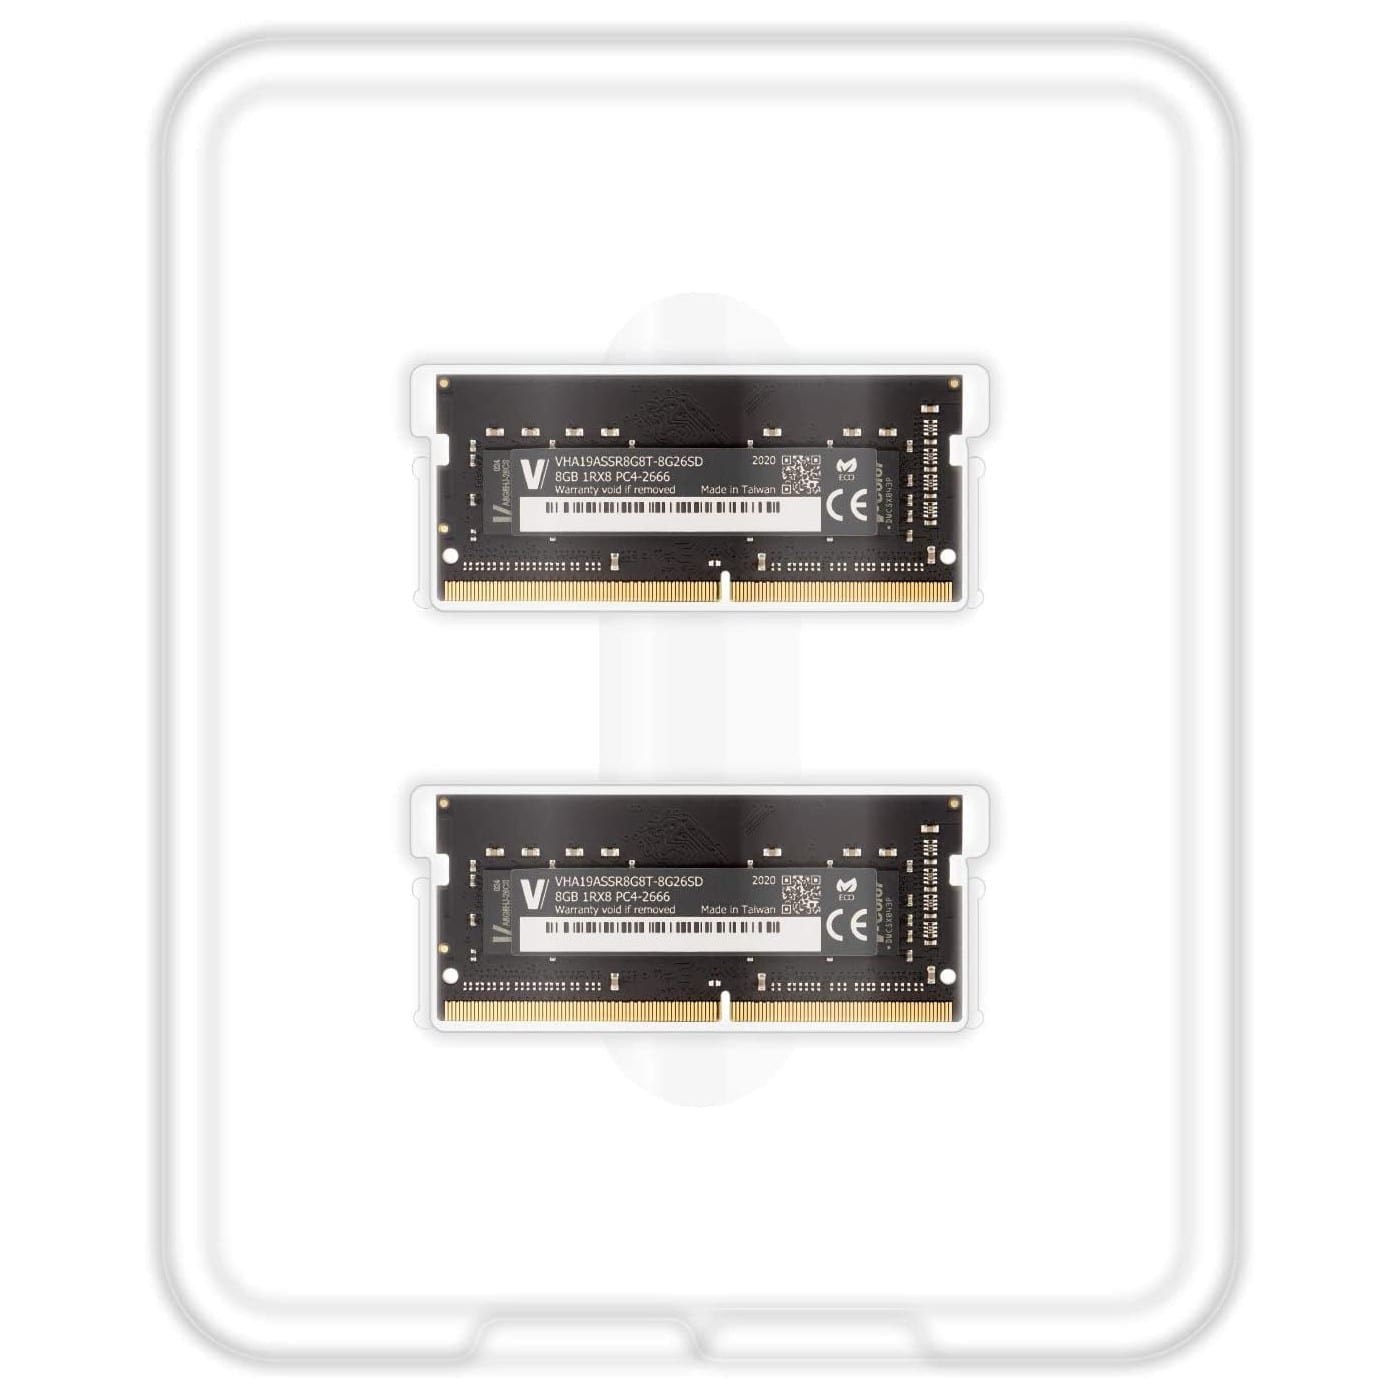 V-Color 16GB(2x8GB) DDR4 2666MHz RAM for Apple iMac 2020 & Late 2019 - (VHA19ASSR8G8T-8G26SD) 4